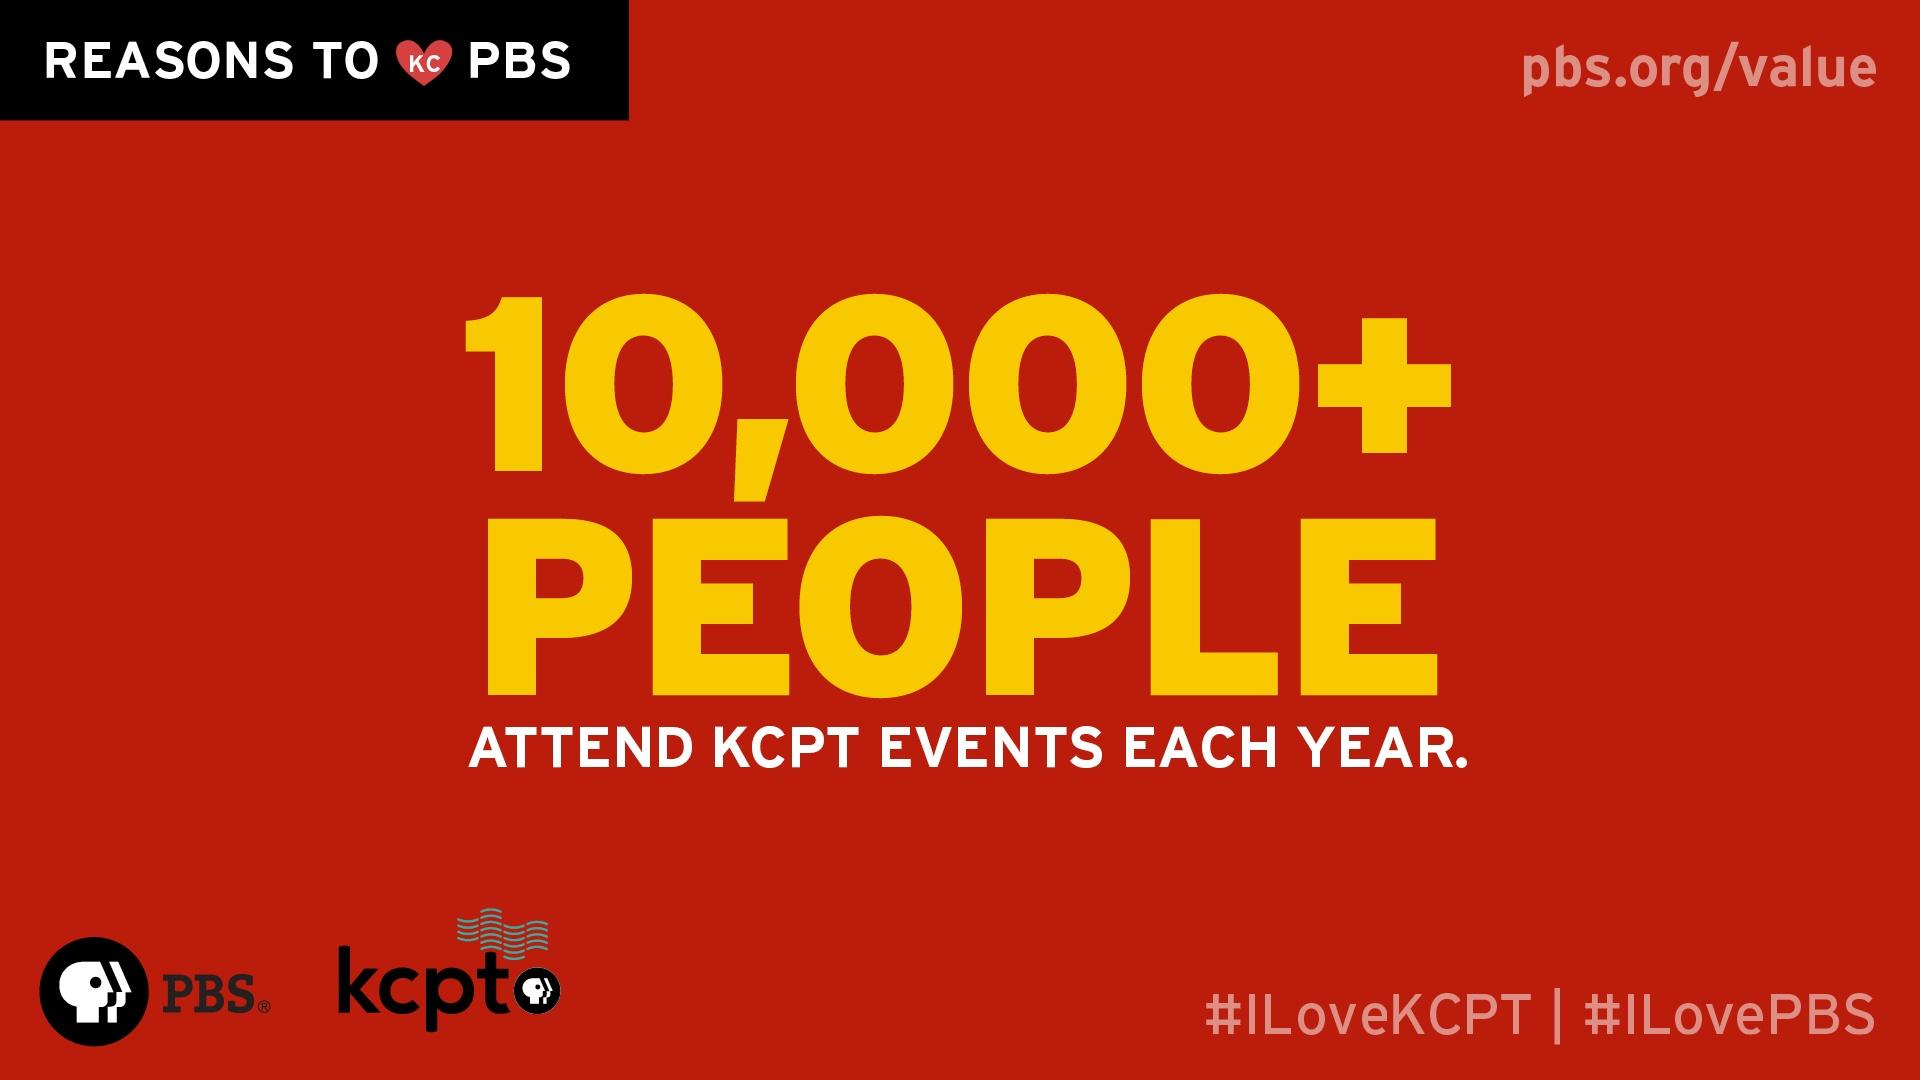 10,000+people attend KCPT events each year.